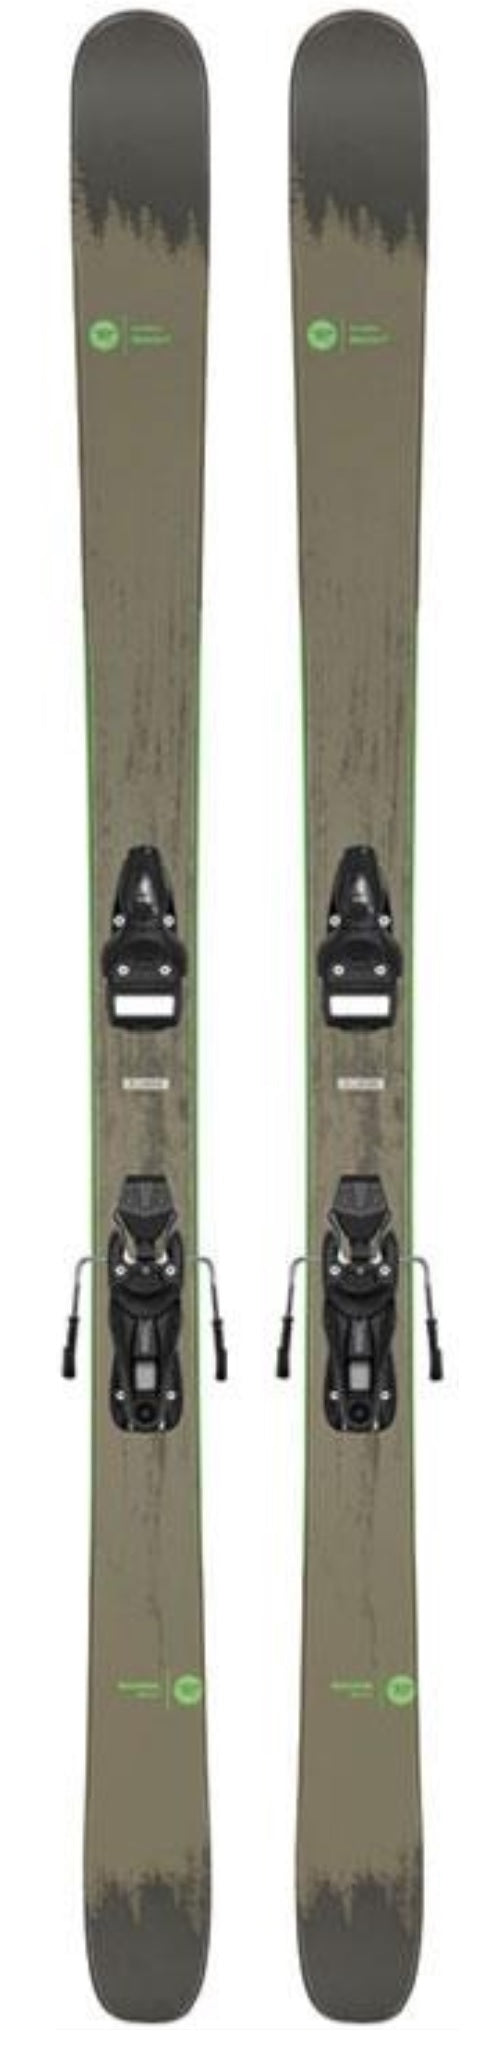 2020 Rossignol Smash 7 snow skis with bindings - ProSkiGuy your Hometown Ski Shop on the web